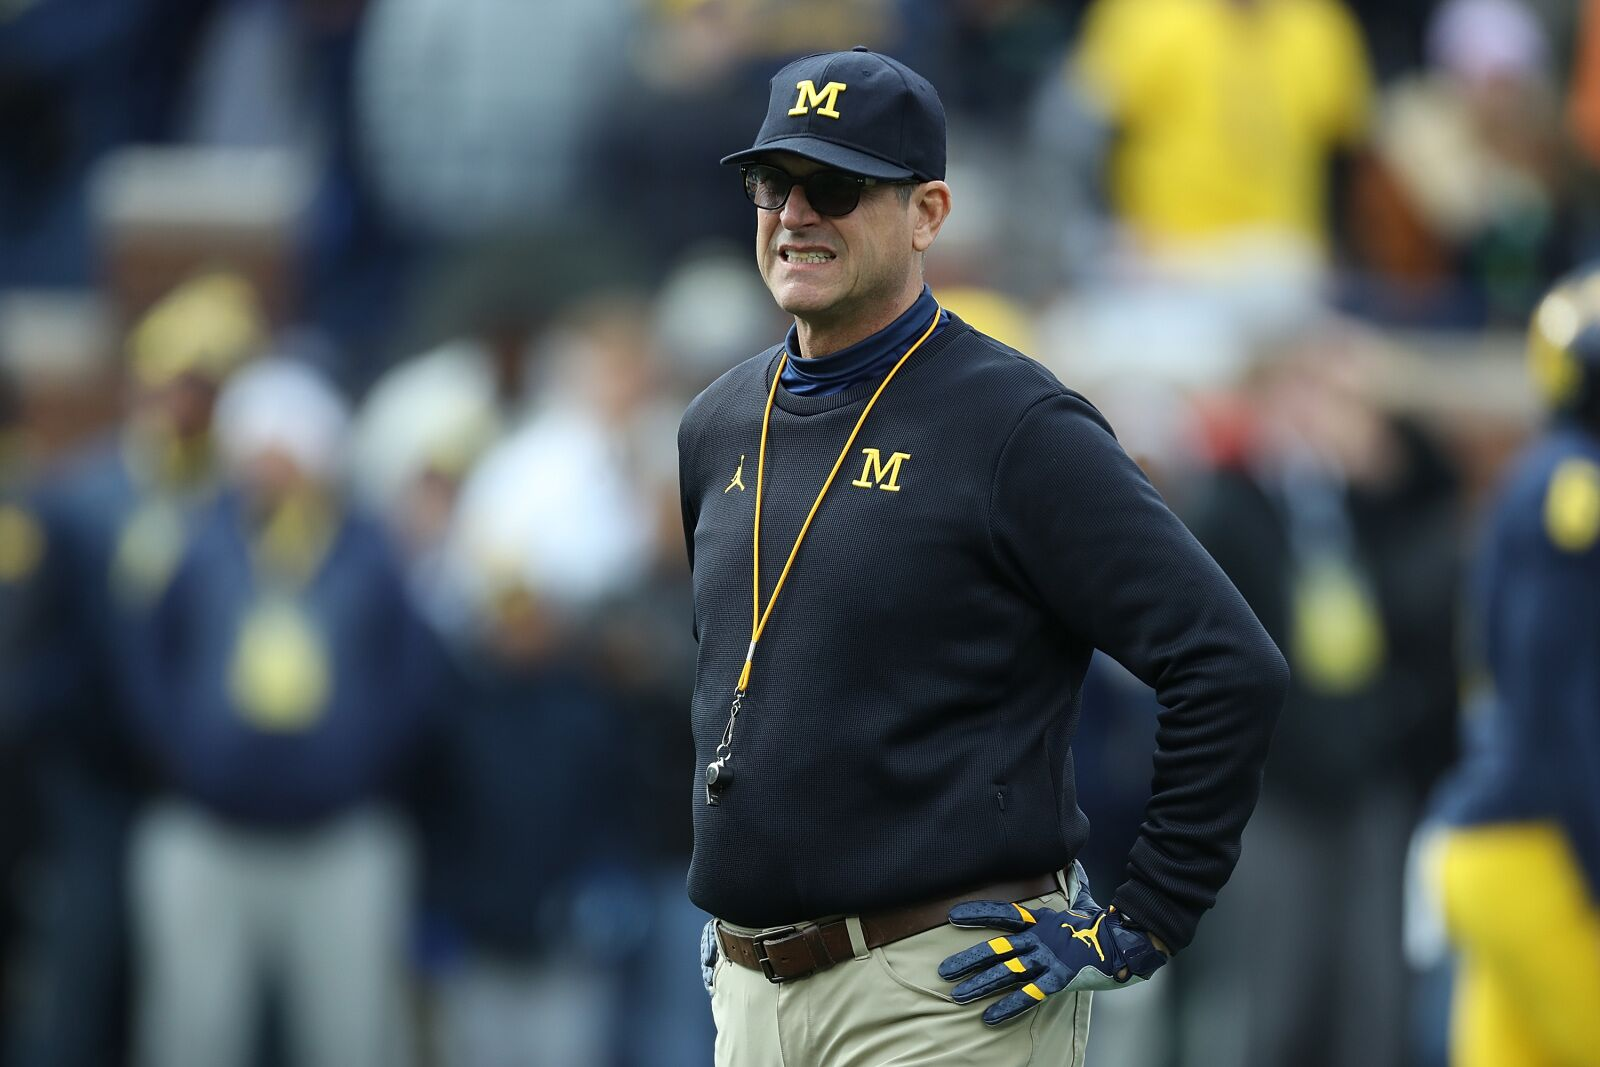 Michigan Football: 3 Positional battles to watch for the Wolverines